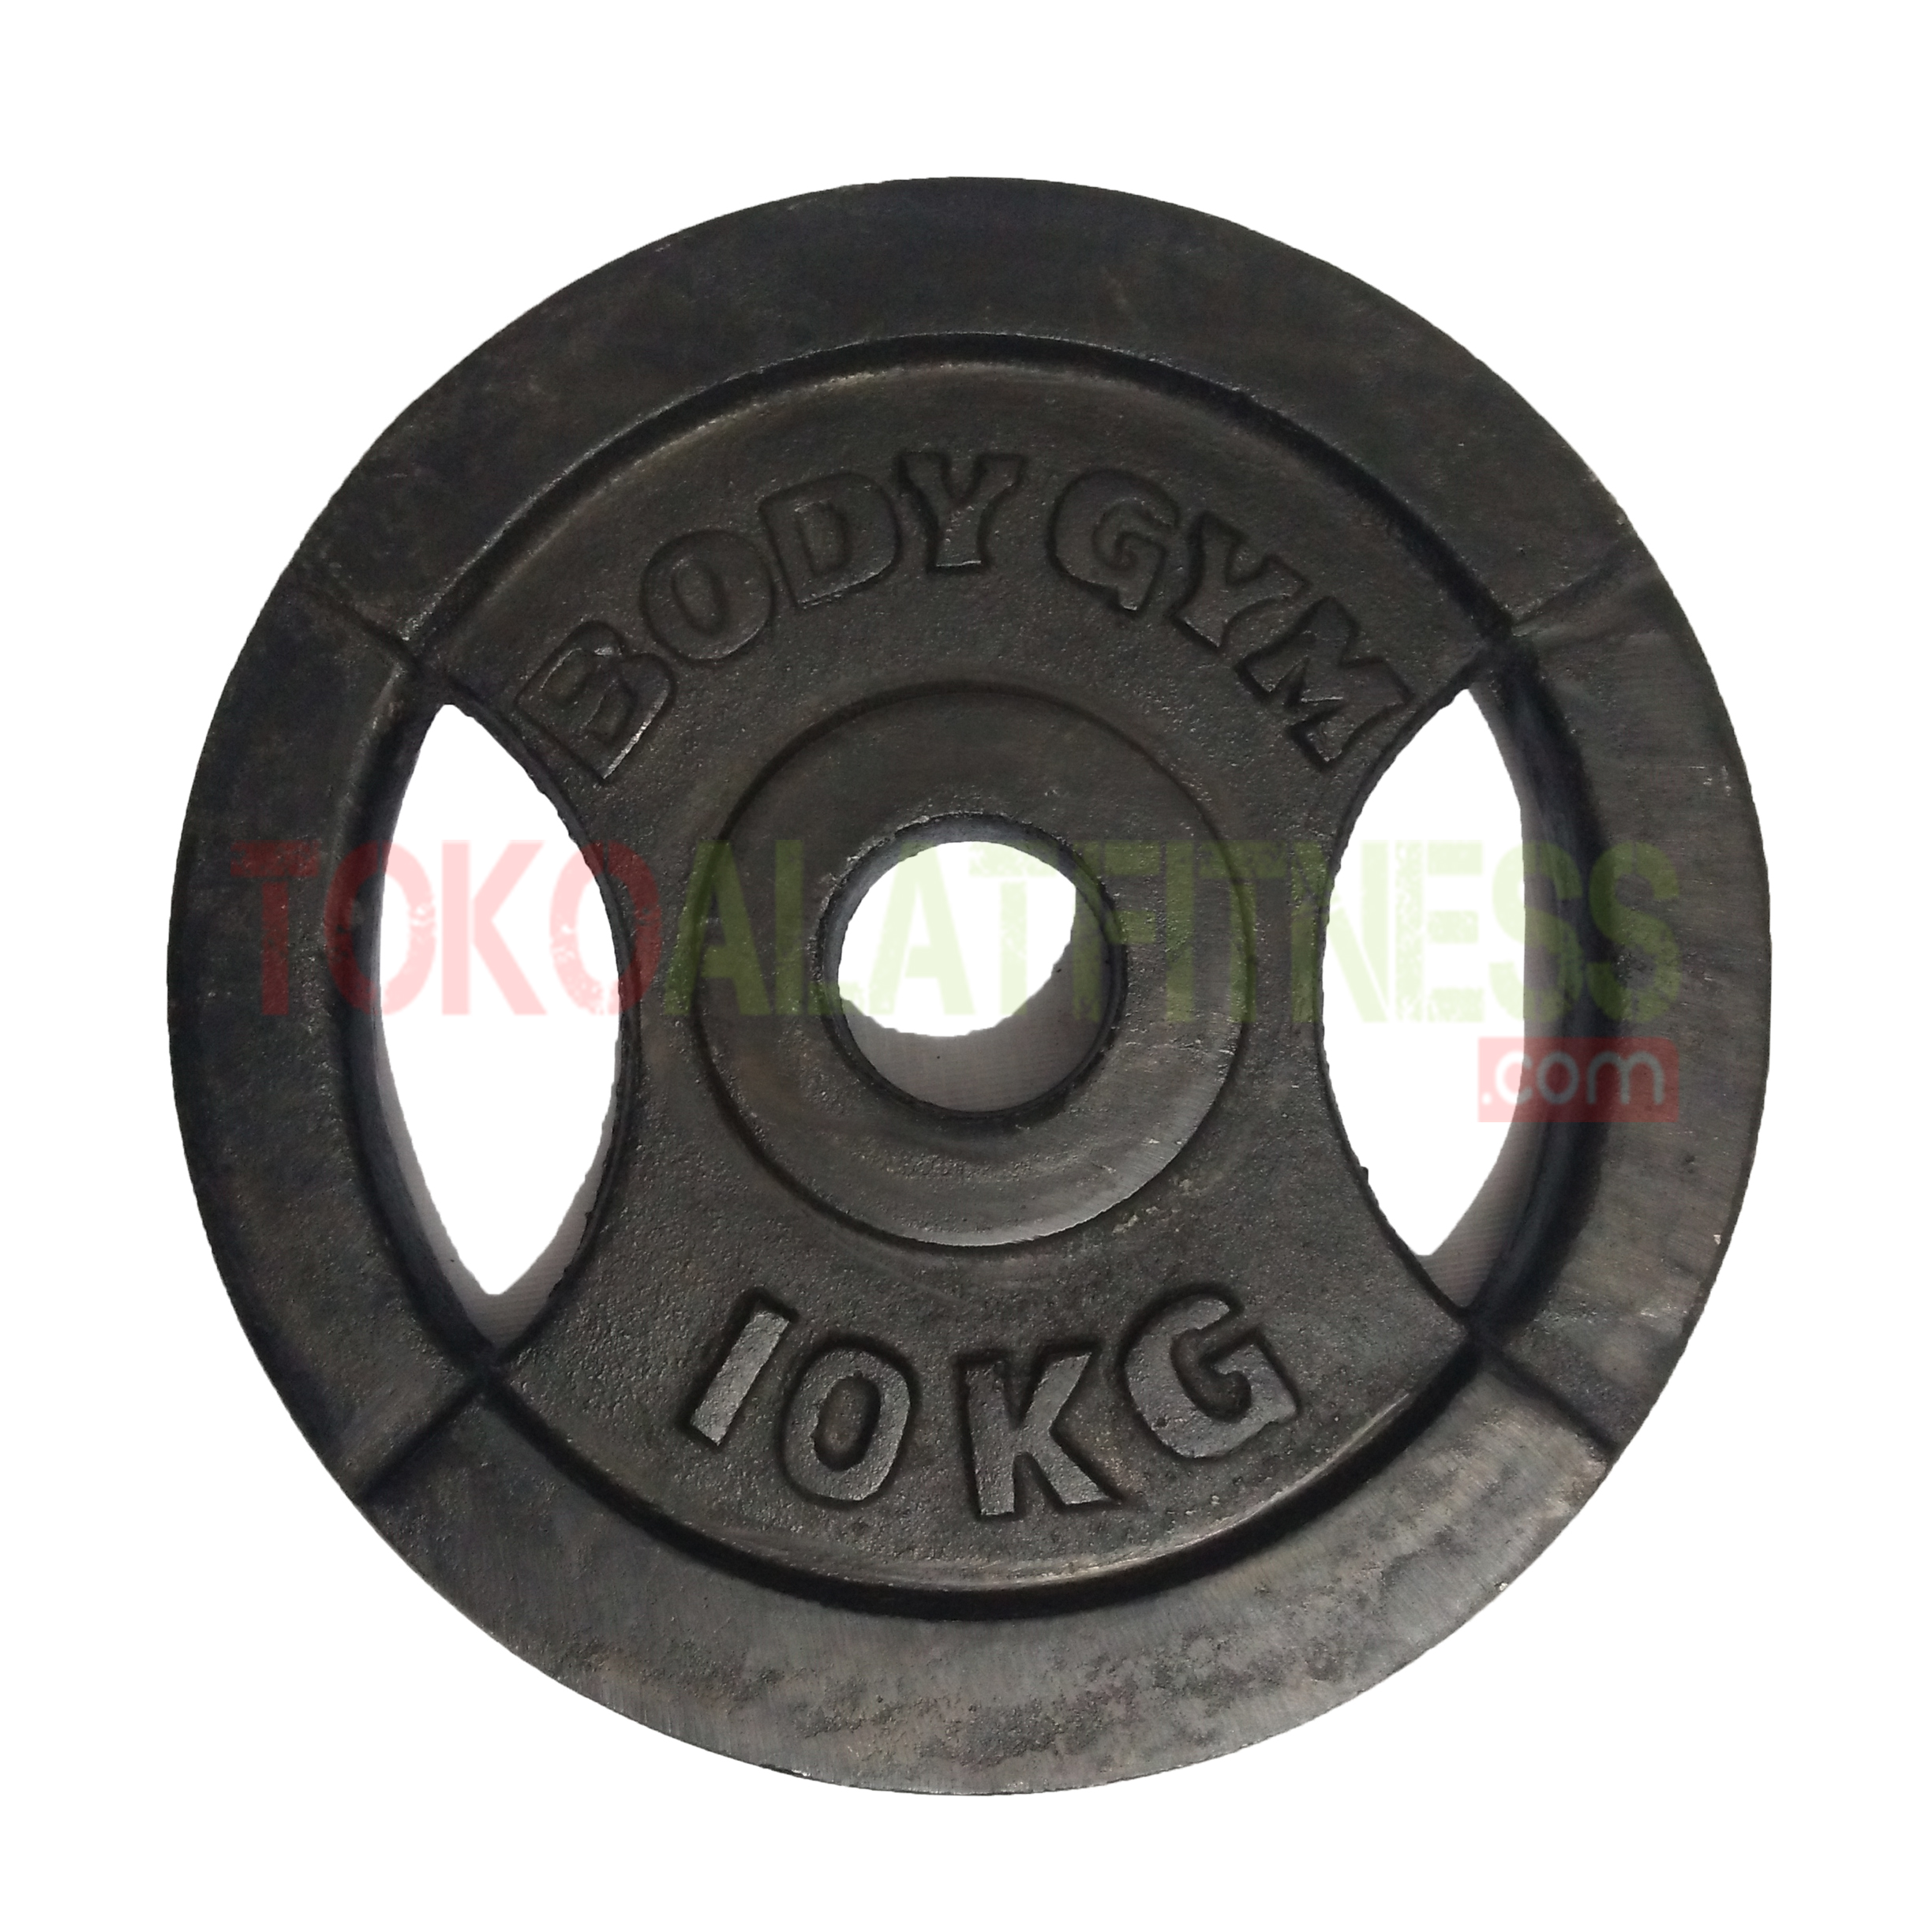 iron plate 10 kg 5 cm wtm - Iron Plate Grip 5cm 10 kg, Barbel Plate Besi Body Gym